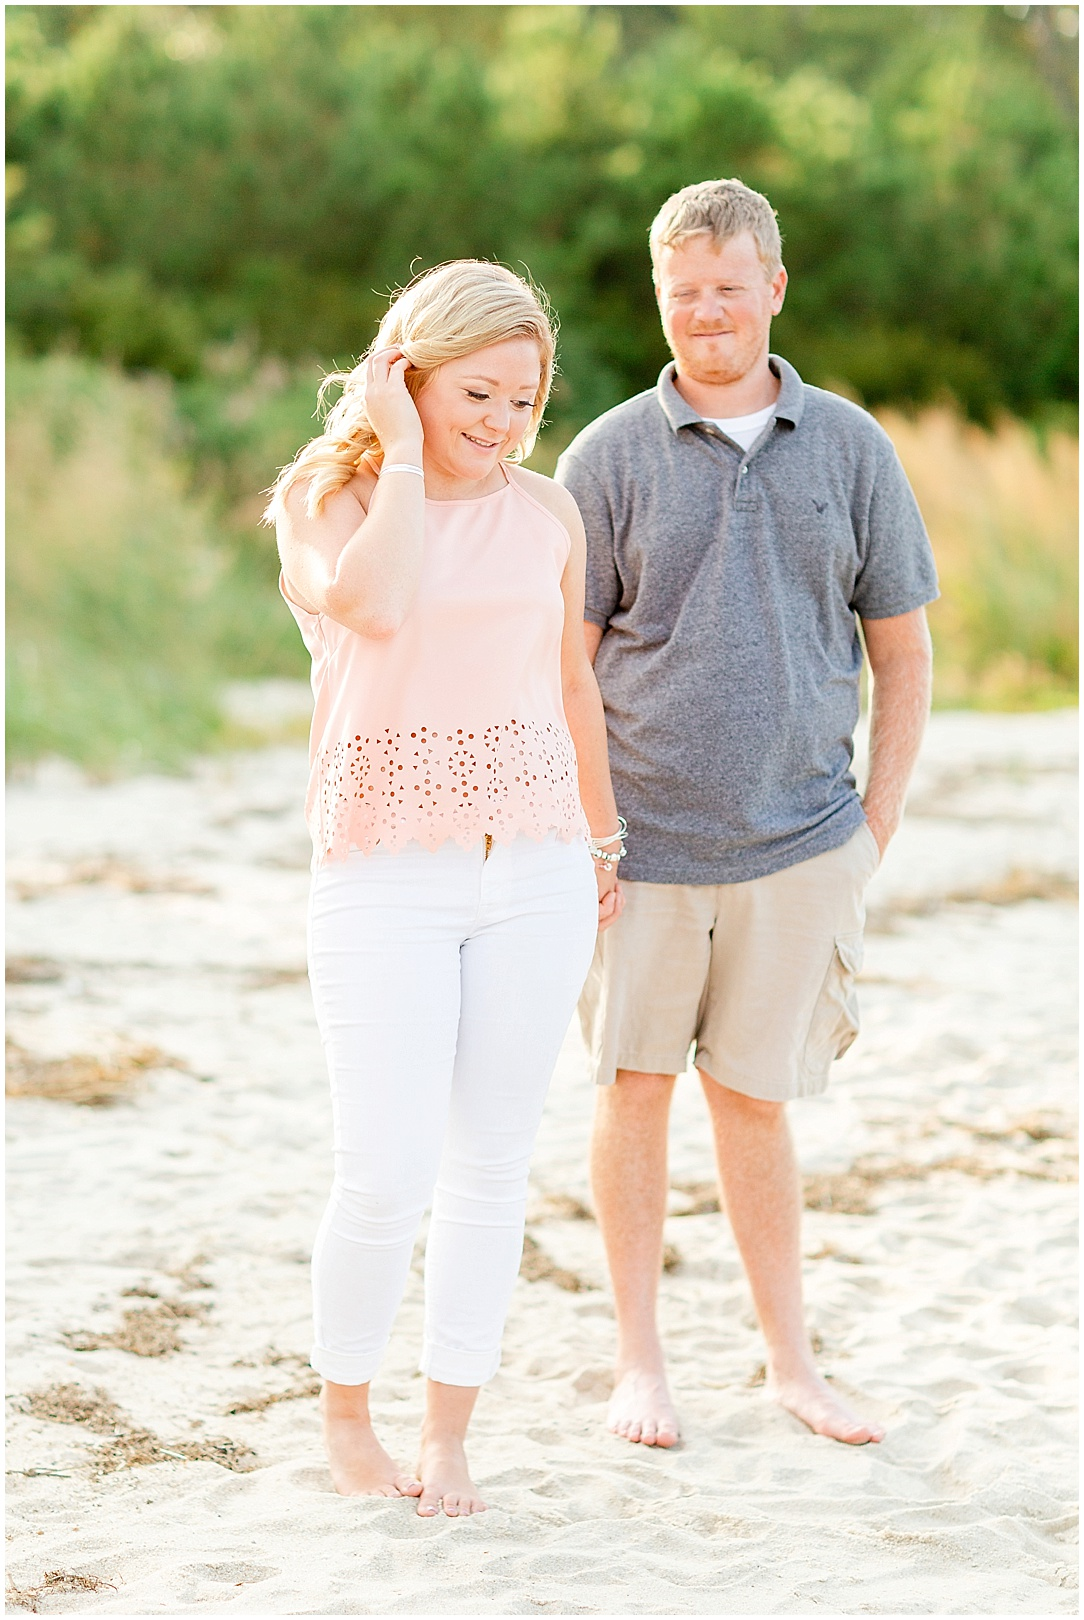 Hughlett Point Engagement Session - Brooke Waldroup Photography_0008.jpg